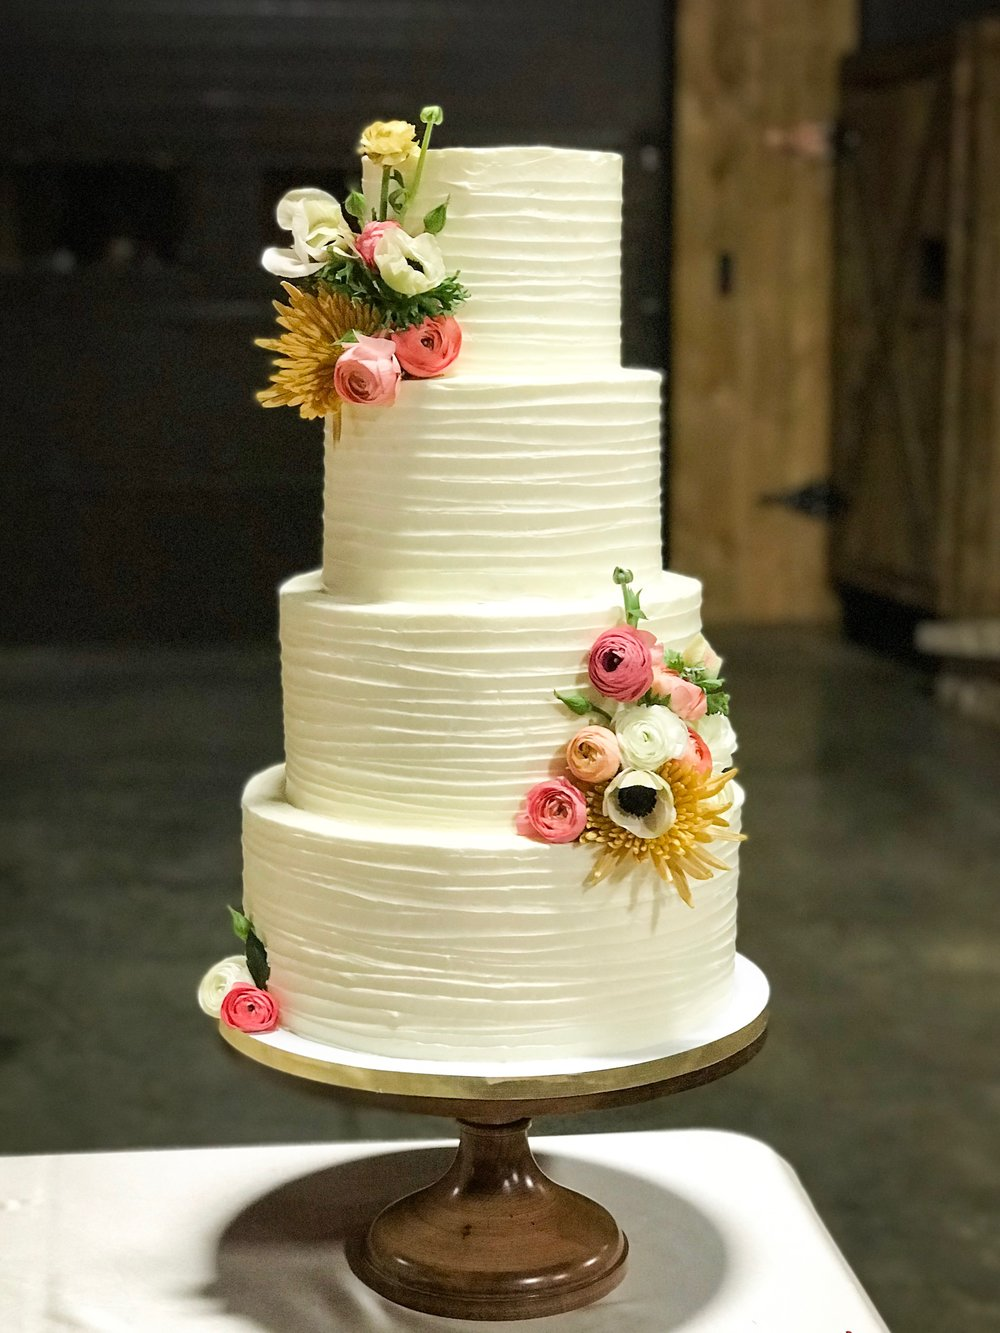 Rustic Textured buttercream  **Fresh Flowers are add ons. Flowers can be provided by us or your florist**